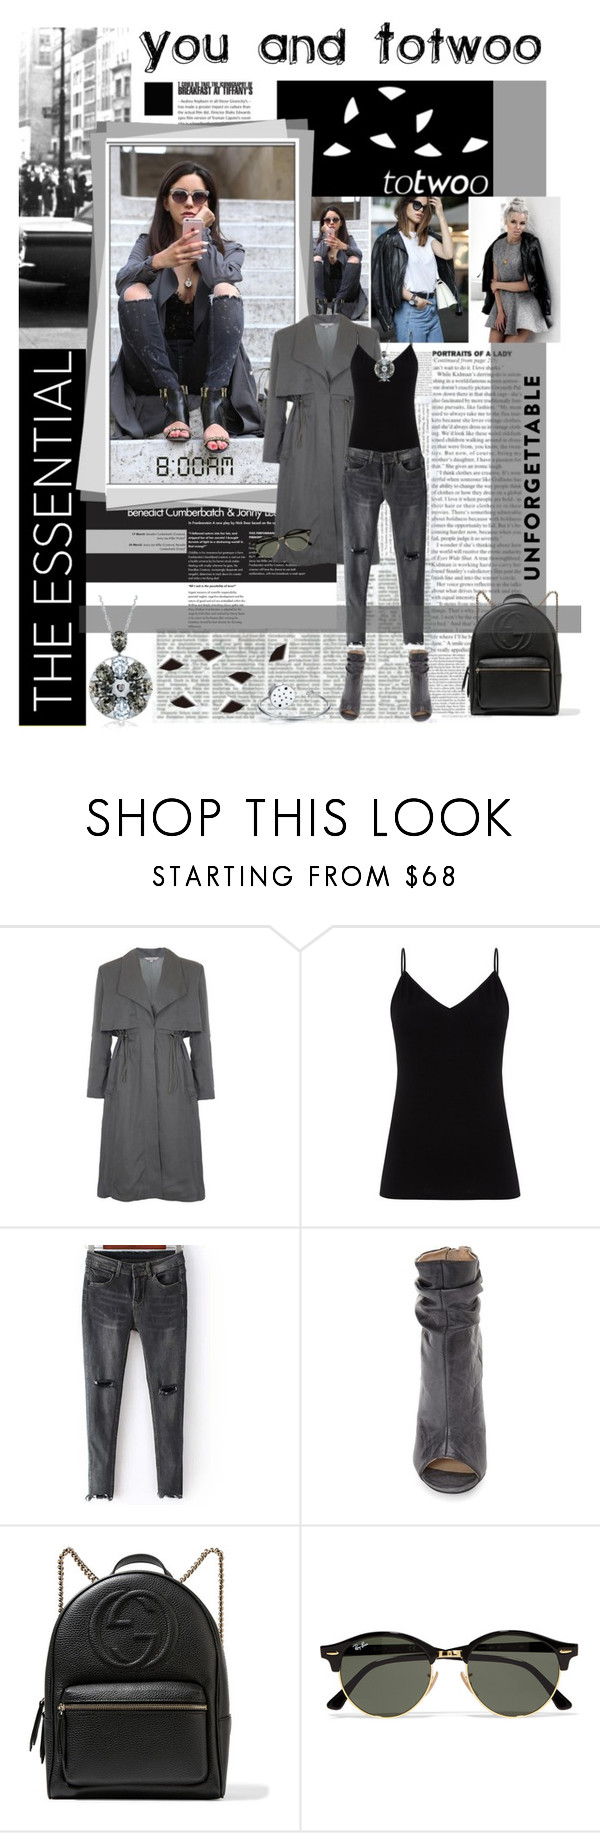 """You and Totwoo"" by lacas ❤ liked on Polyvore featuring French Connection, Diane Von Furstenberg, Kristin Cavallari, Gucci, Ray-Ban, WearableTech, totwoo and smartjewelry"